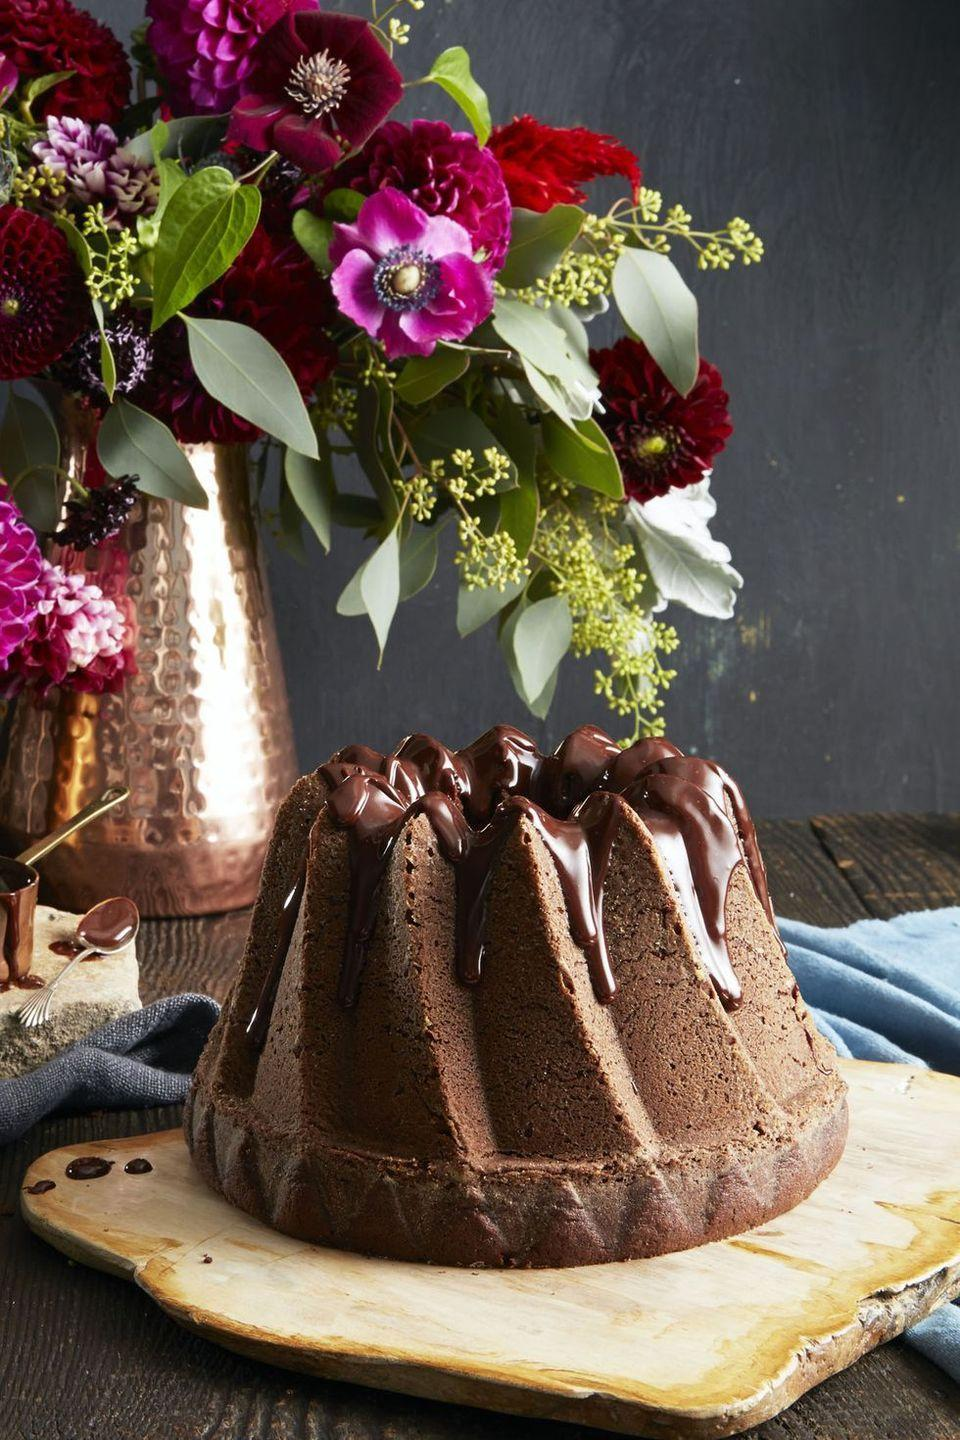 """<p>Strong-brewed coffee in the batter and the frosting really amps up the cocoa flavor — and it'll keep the adults awake for a long night of trick-or-treating.</p><p><em><a href=""""https://www.goodhousekeeping.com/food-recipes/dessert/a35180/double-chocolate-bundt/"""" rel=""""nofollow noopener"""" target=""""_blank"""" data-ylk=""""slk:Get the recipe for Double Chocolate Bundt »"""" class=""""link rapid-noclick-resp"""">Get the recipe for Double Chocolate Bundt »</a></em></p><p><strong>RELATED: </strong><a href=""""https://www.goodhousekeeping.com/food-recipes/cooking/g32223075/how-to-make-coffee-at-home/"""" rel=""""nofollow noopener"""" target=""""_blank"""" data-ylk=""""slk:Here's How to Make Coffee at Home Using 7 Different Brewing Methods"""" class=""""link rapid-noclick-resp"""">Here's How to Make Coffee at Home Using 7 Different Brewing Methods</a><br></p>"""